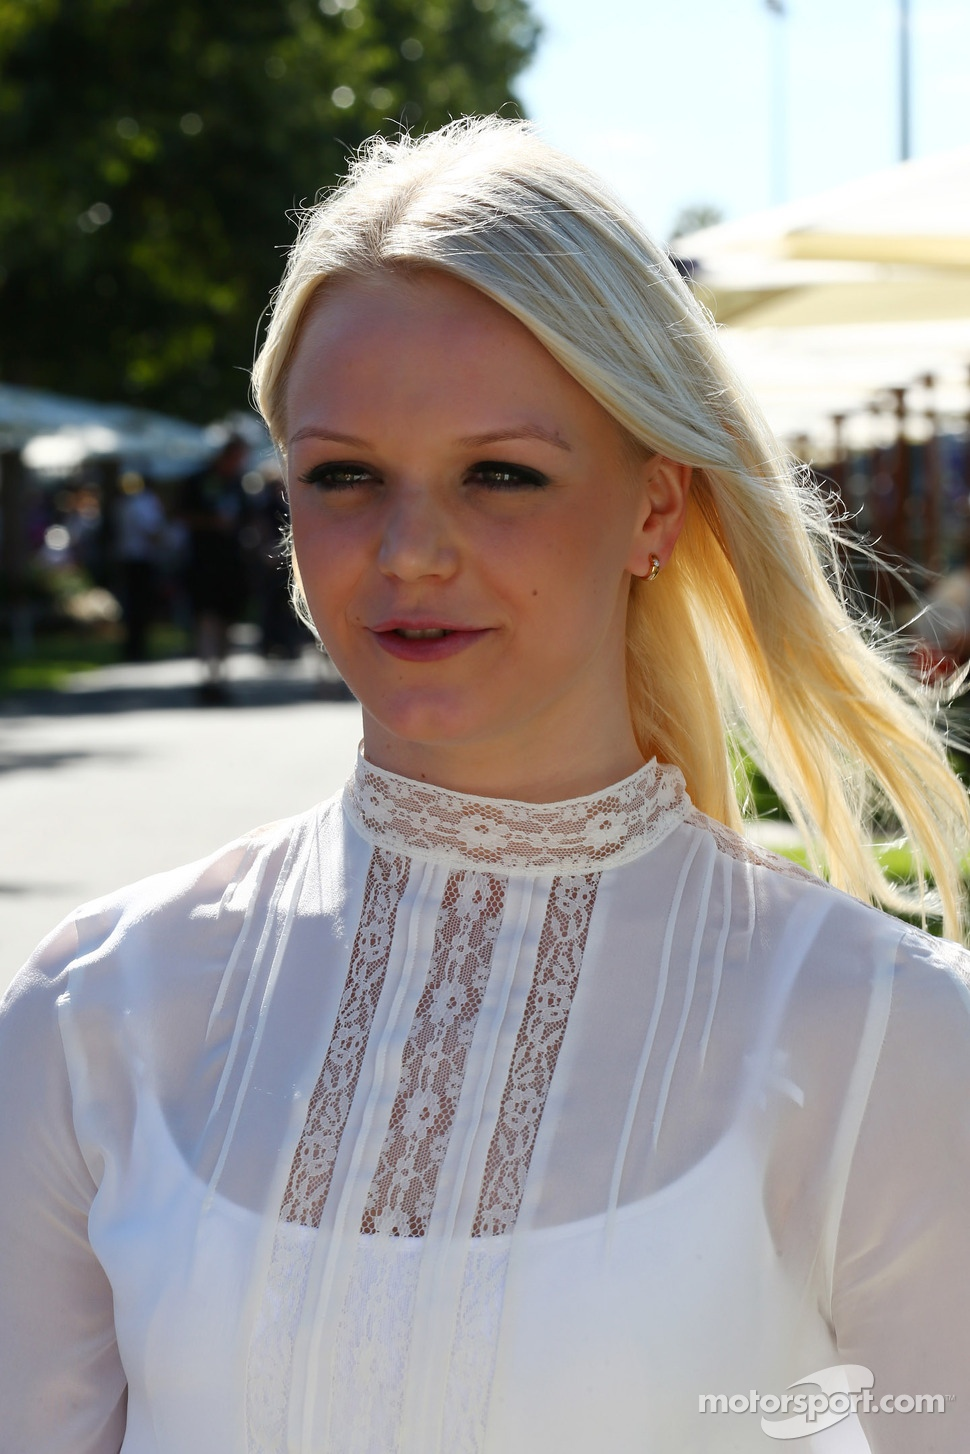 Emilia Pikkarainen, Swimmer, the girlfriend of Valtteri Bottas, Williams